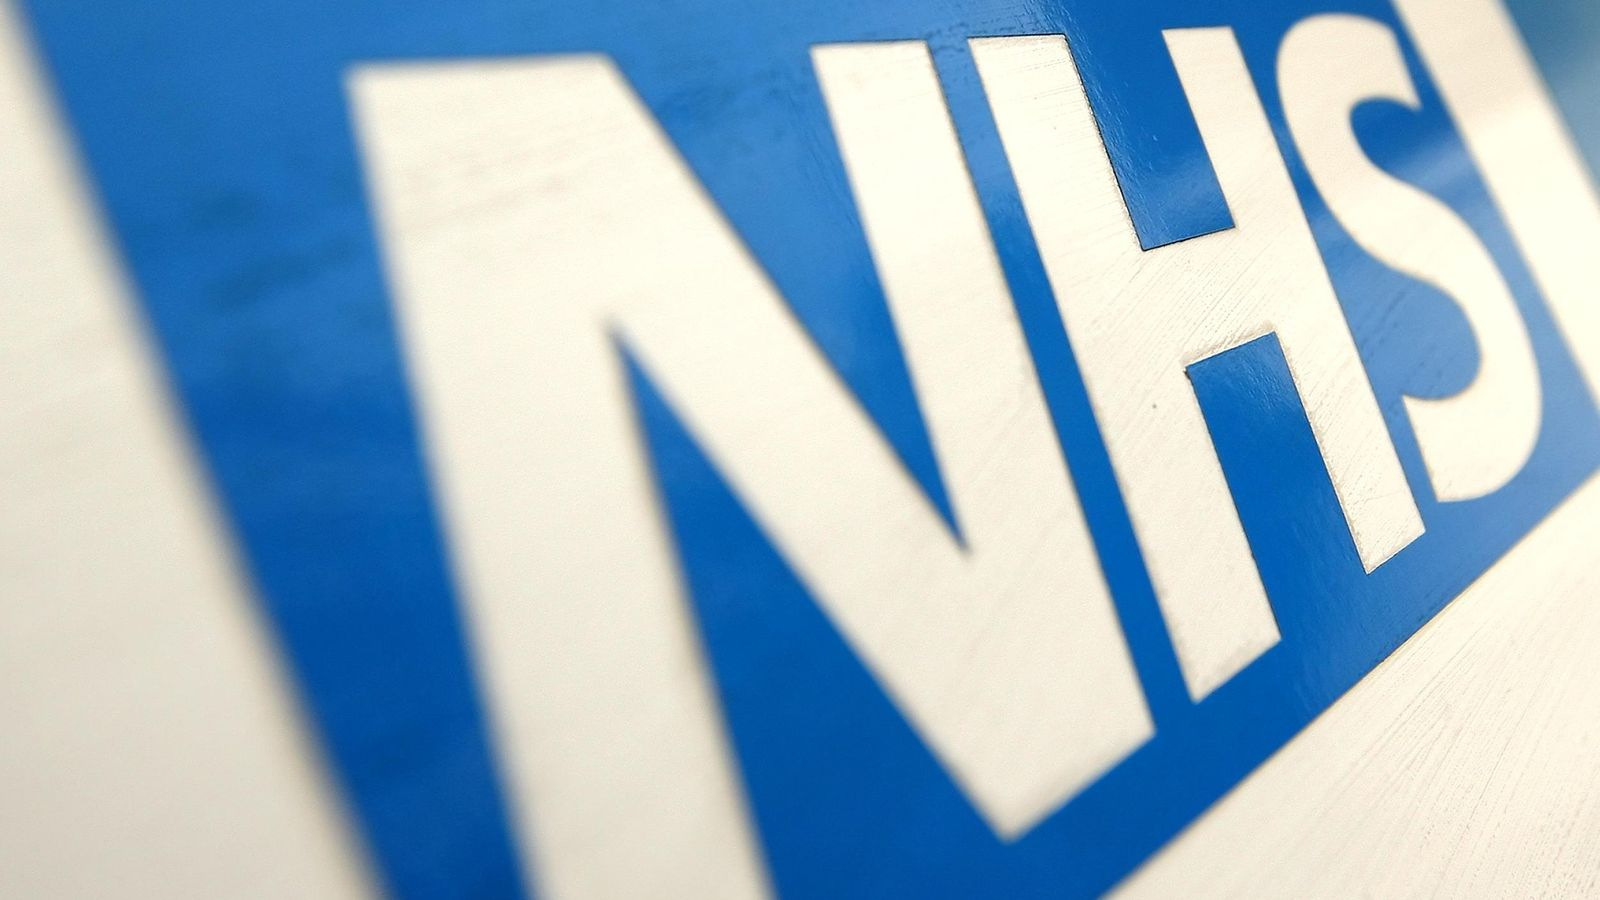 Hospital waiting lists: Number of people waiting for treatment in England highest since records began